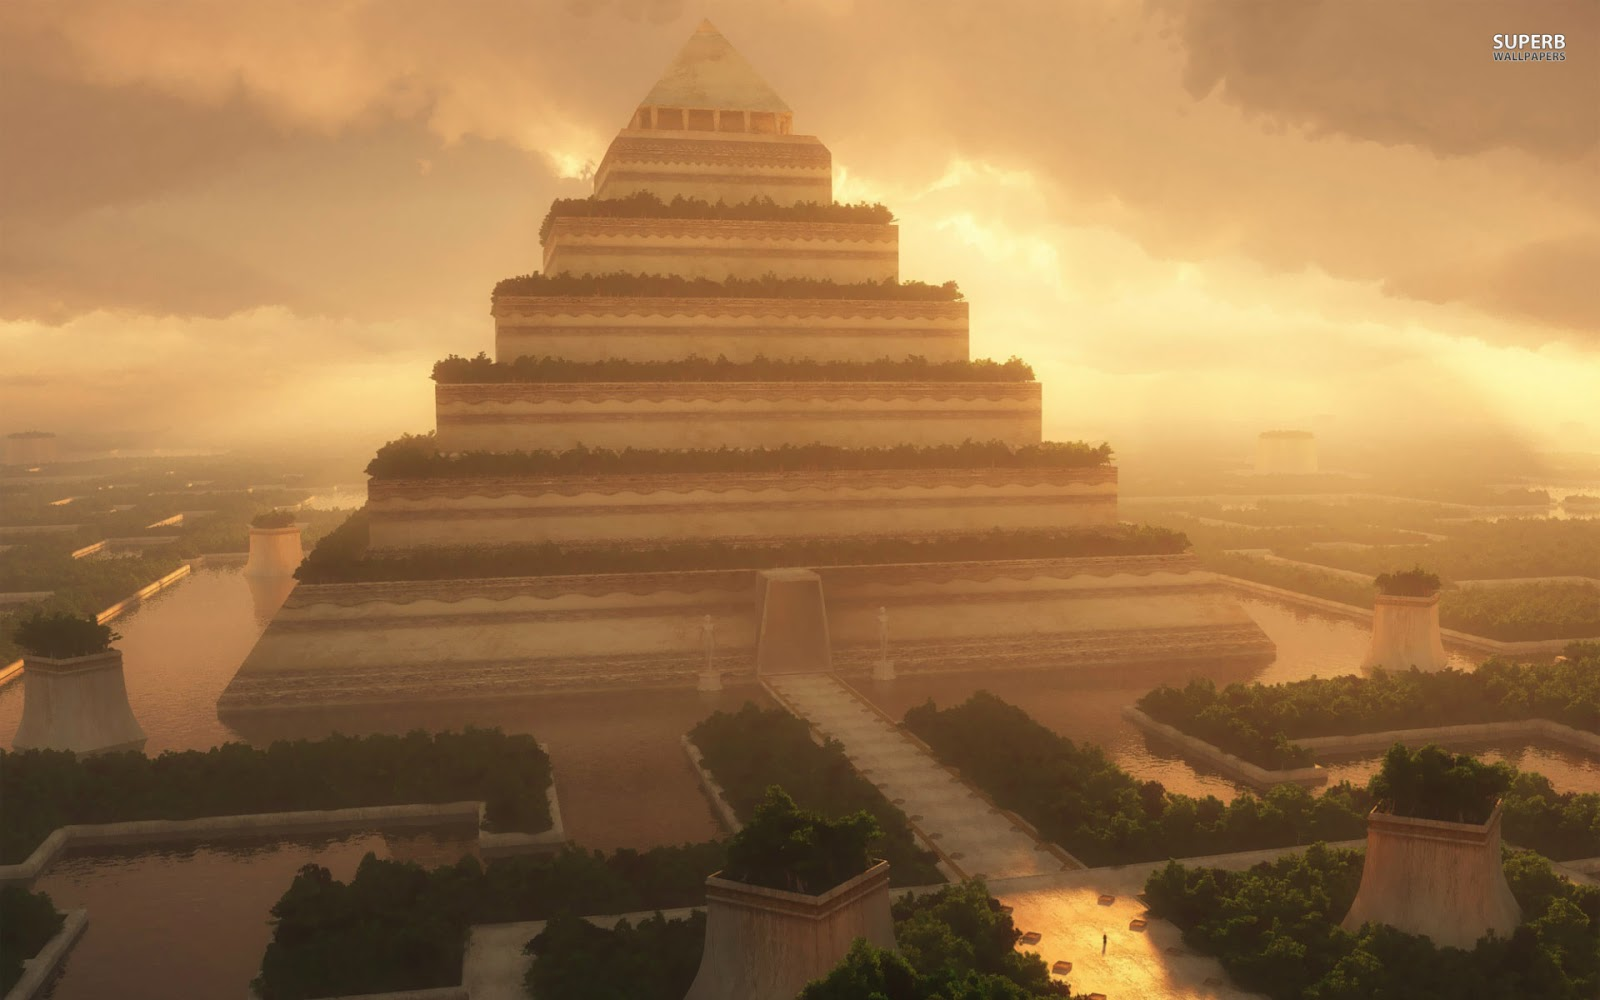 10 Unbelievable Facts About Egypt Mysterious Facts